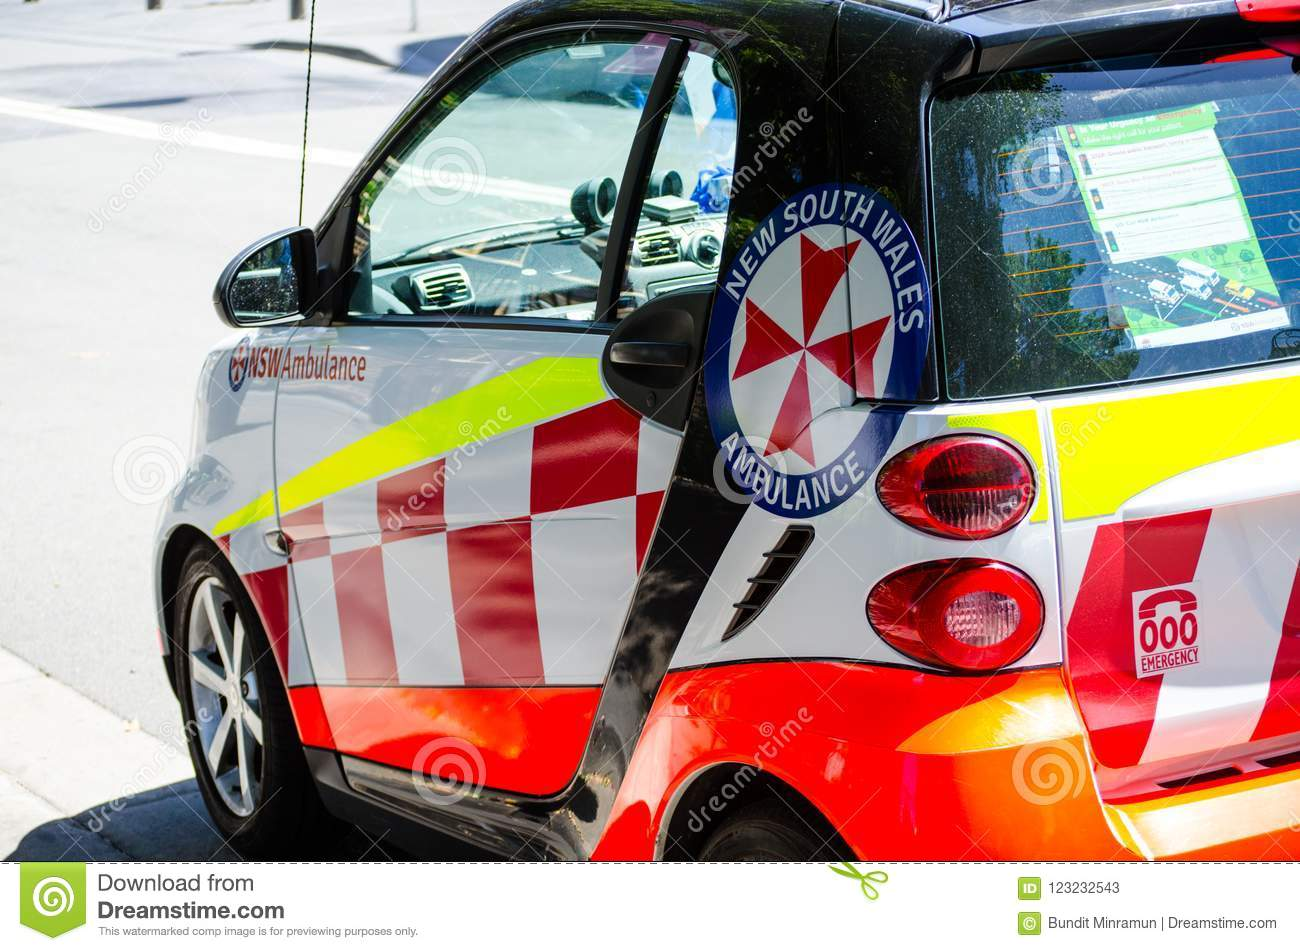 Little NSW Ambulance Smart Car Parking On Downtown Street Of